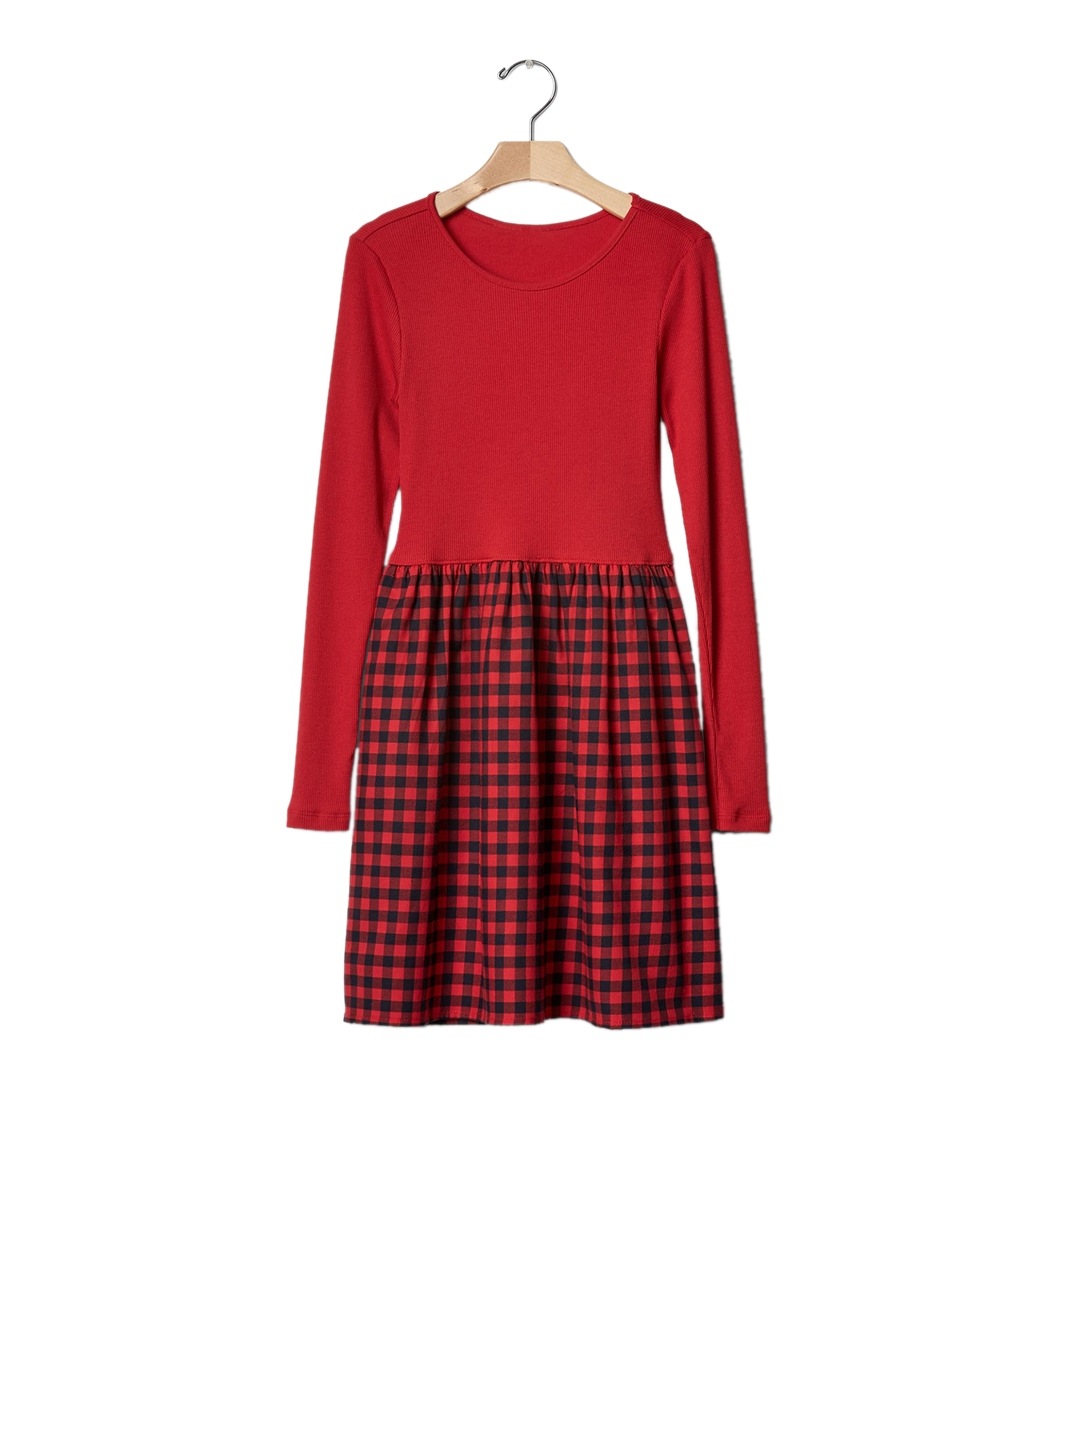 bb5bdddaf16 Buy GAP Girls Red Mix Fabric Plaid Dress - Dresses for Girls 7520540 ...